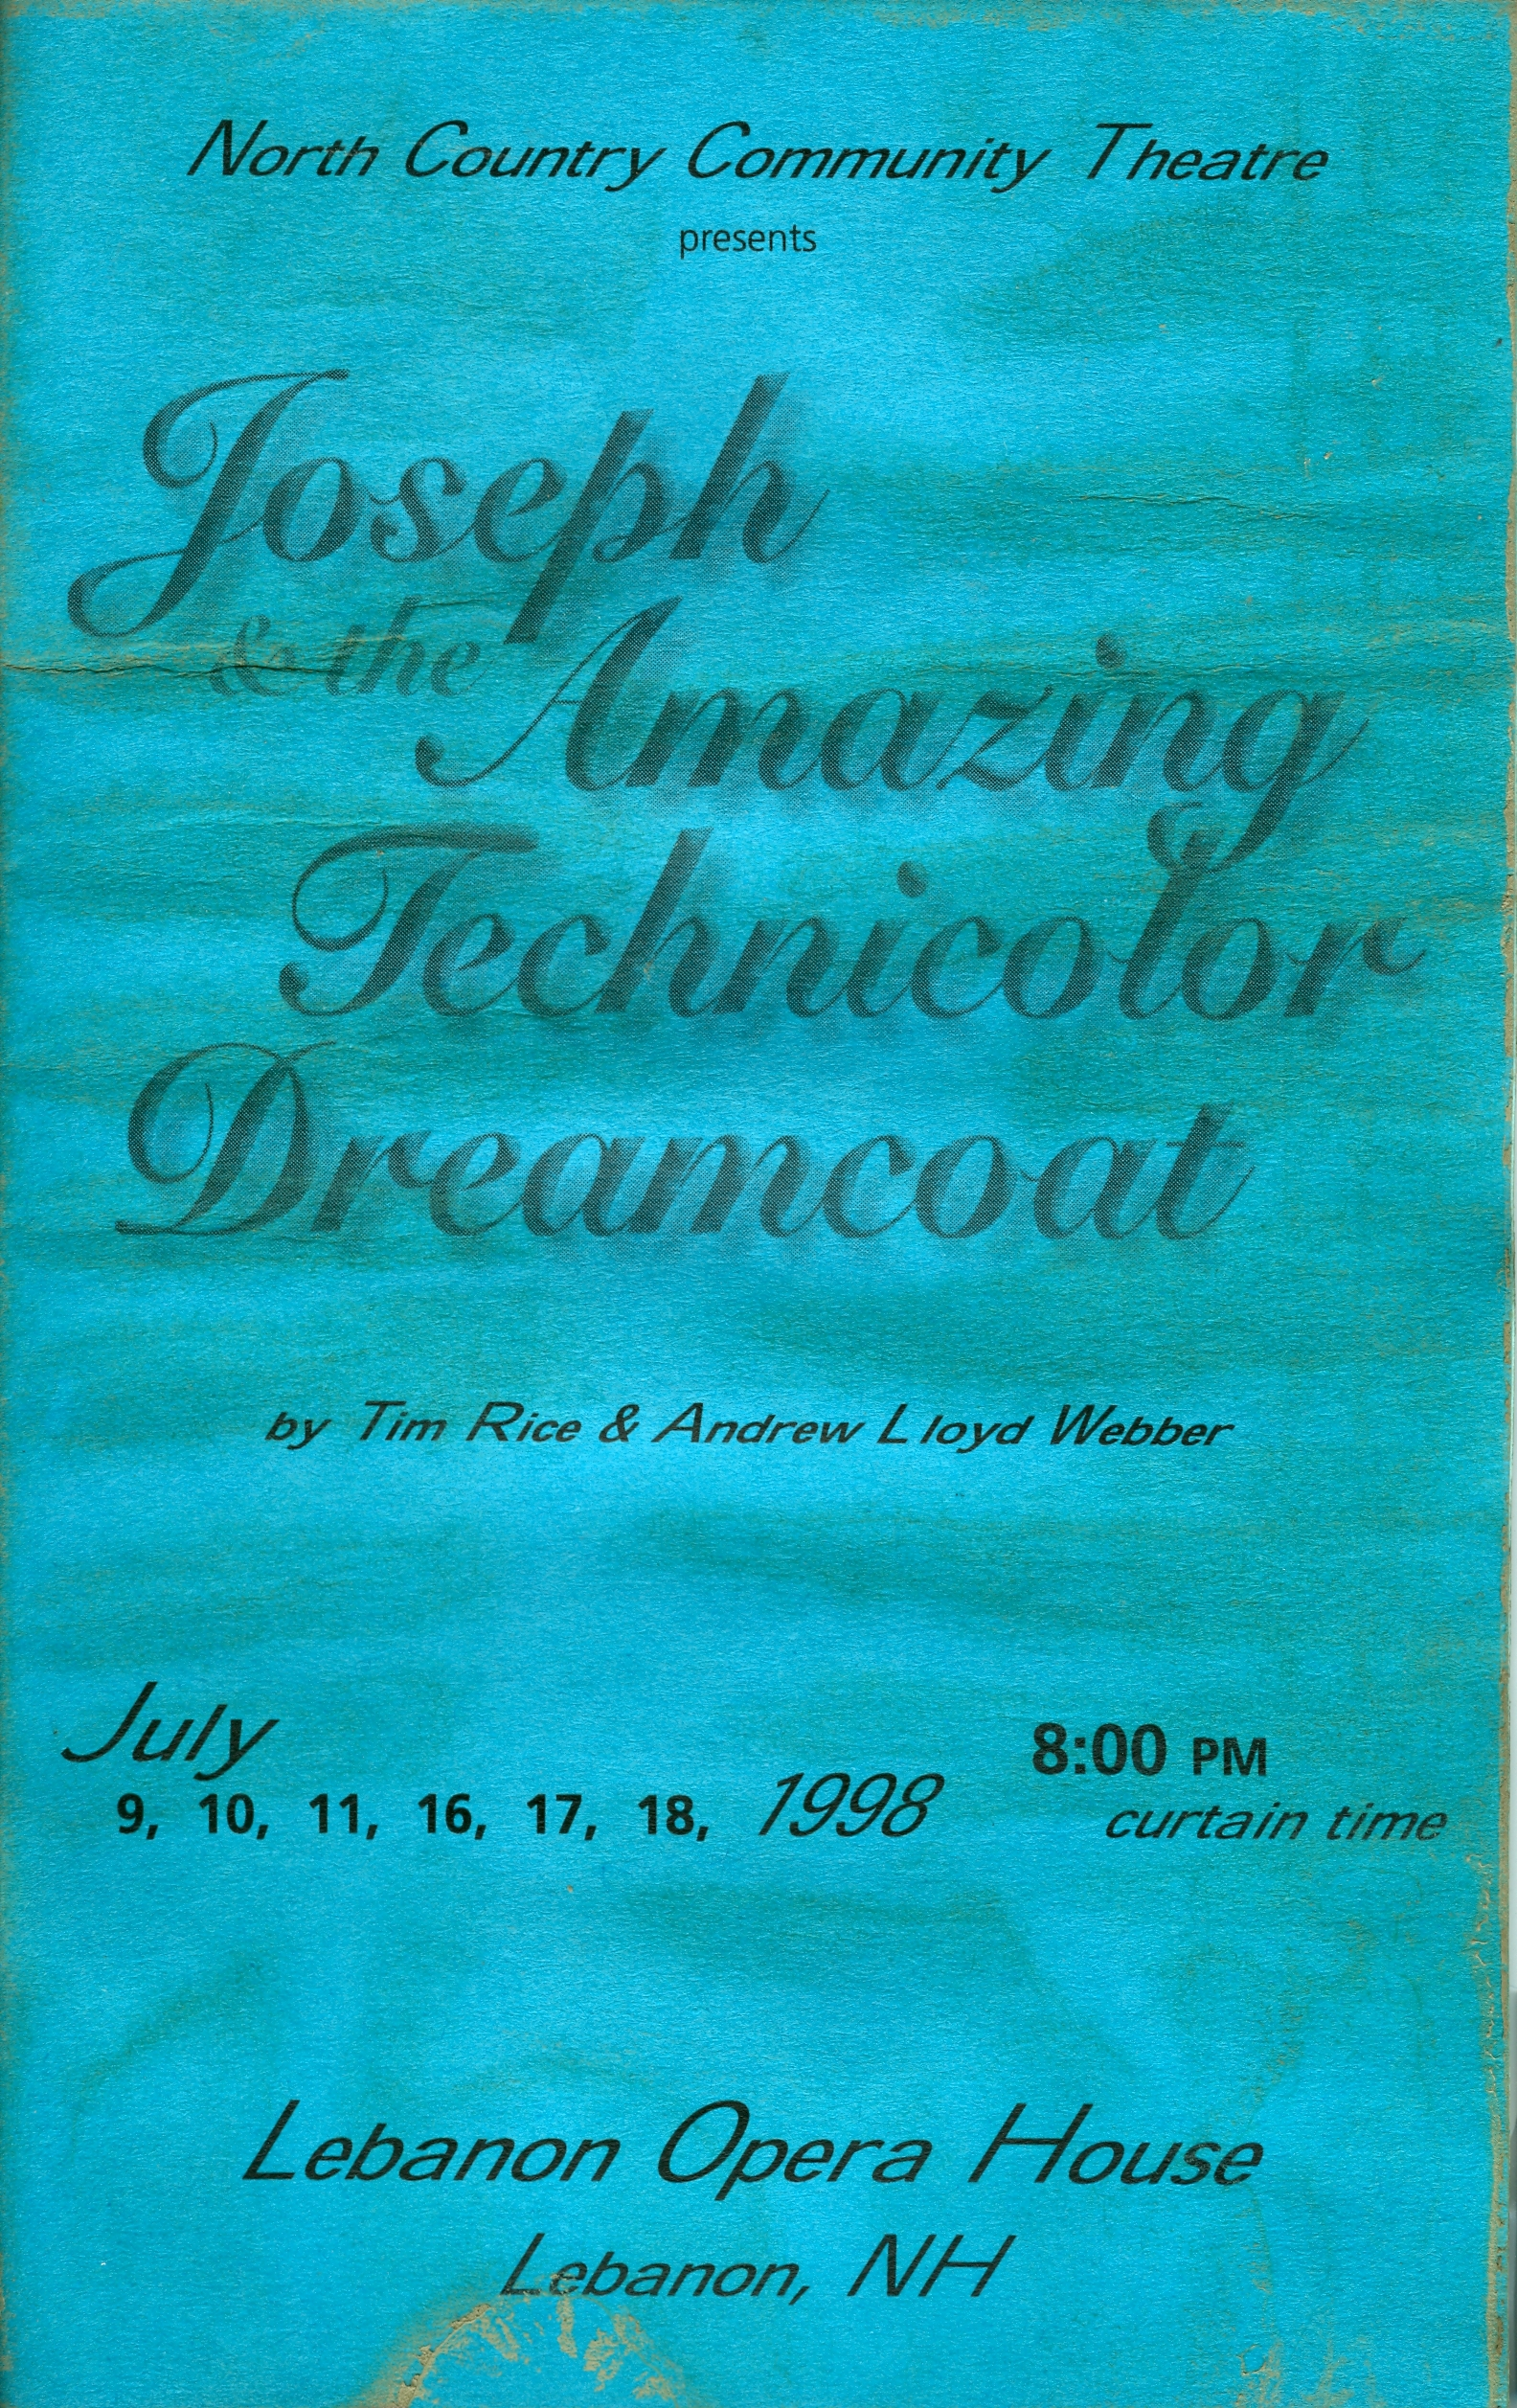 1998-Joseph-Technicolor-Dreamcoat